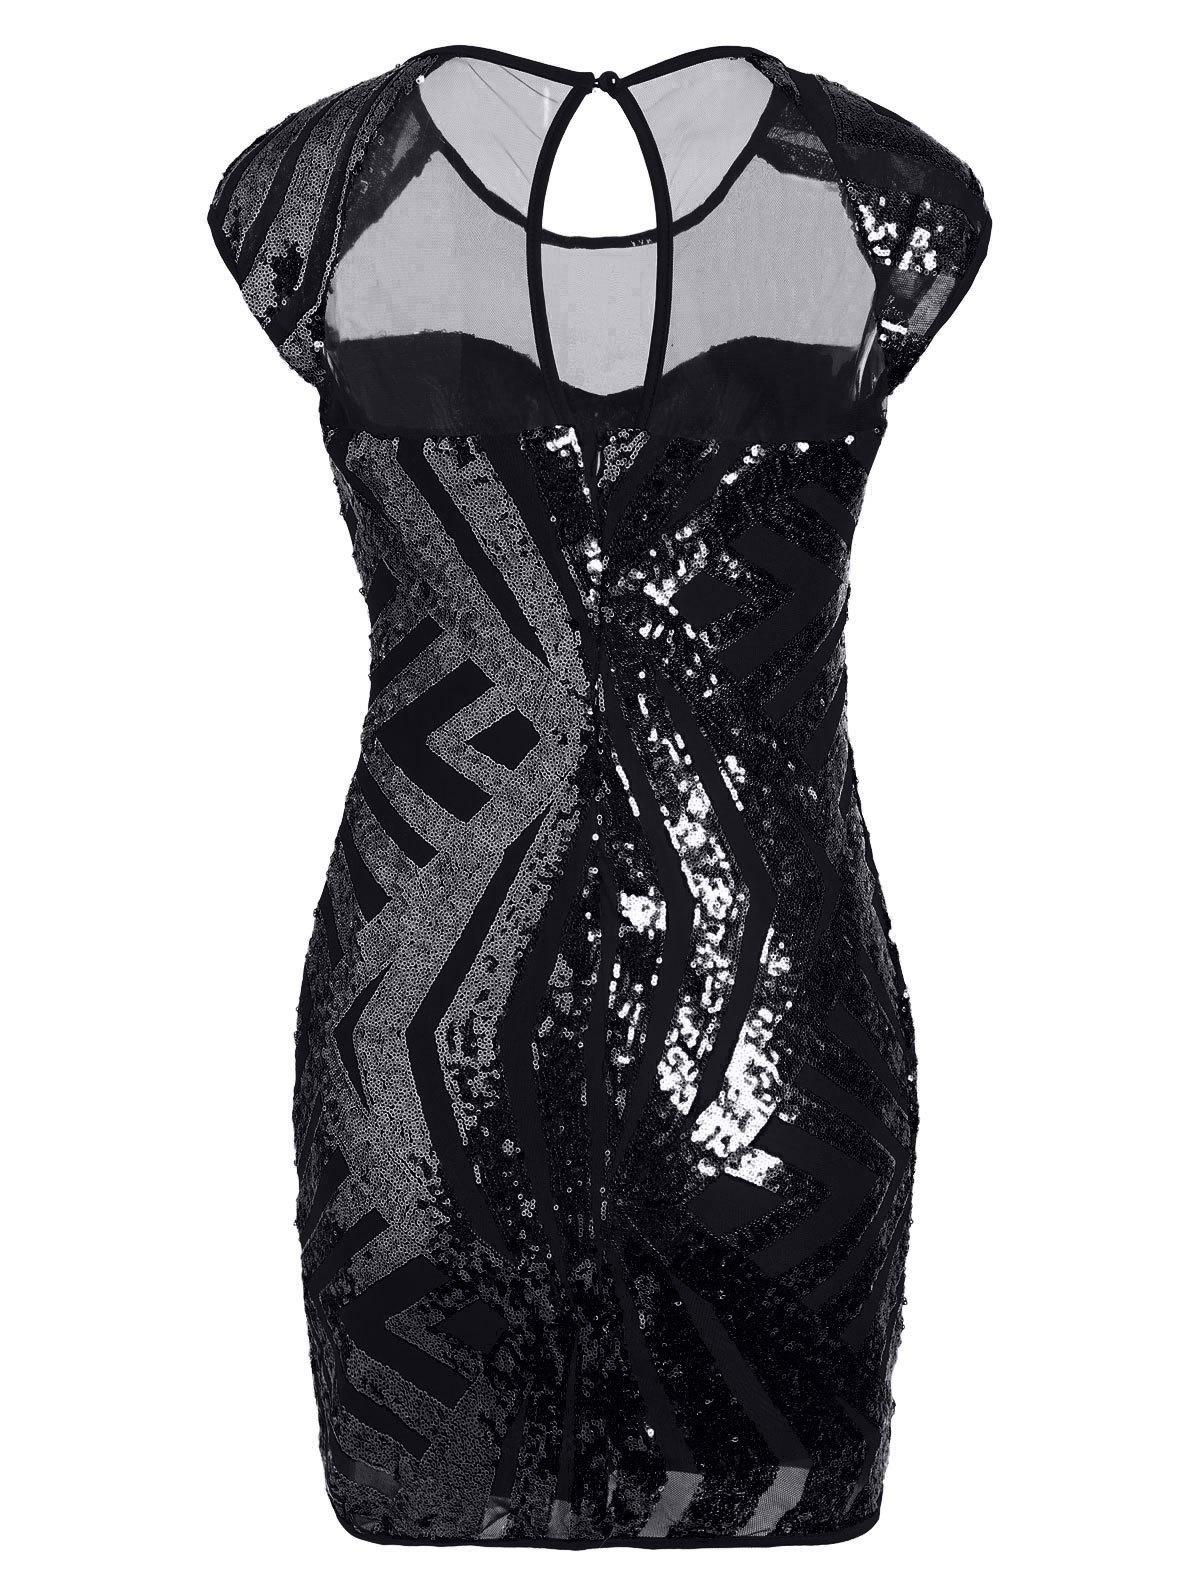 Mesh Insert Sequin Bodycon Club Dress - BLACK S